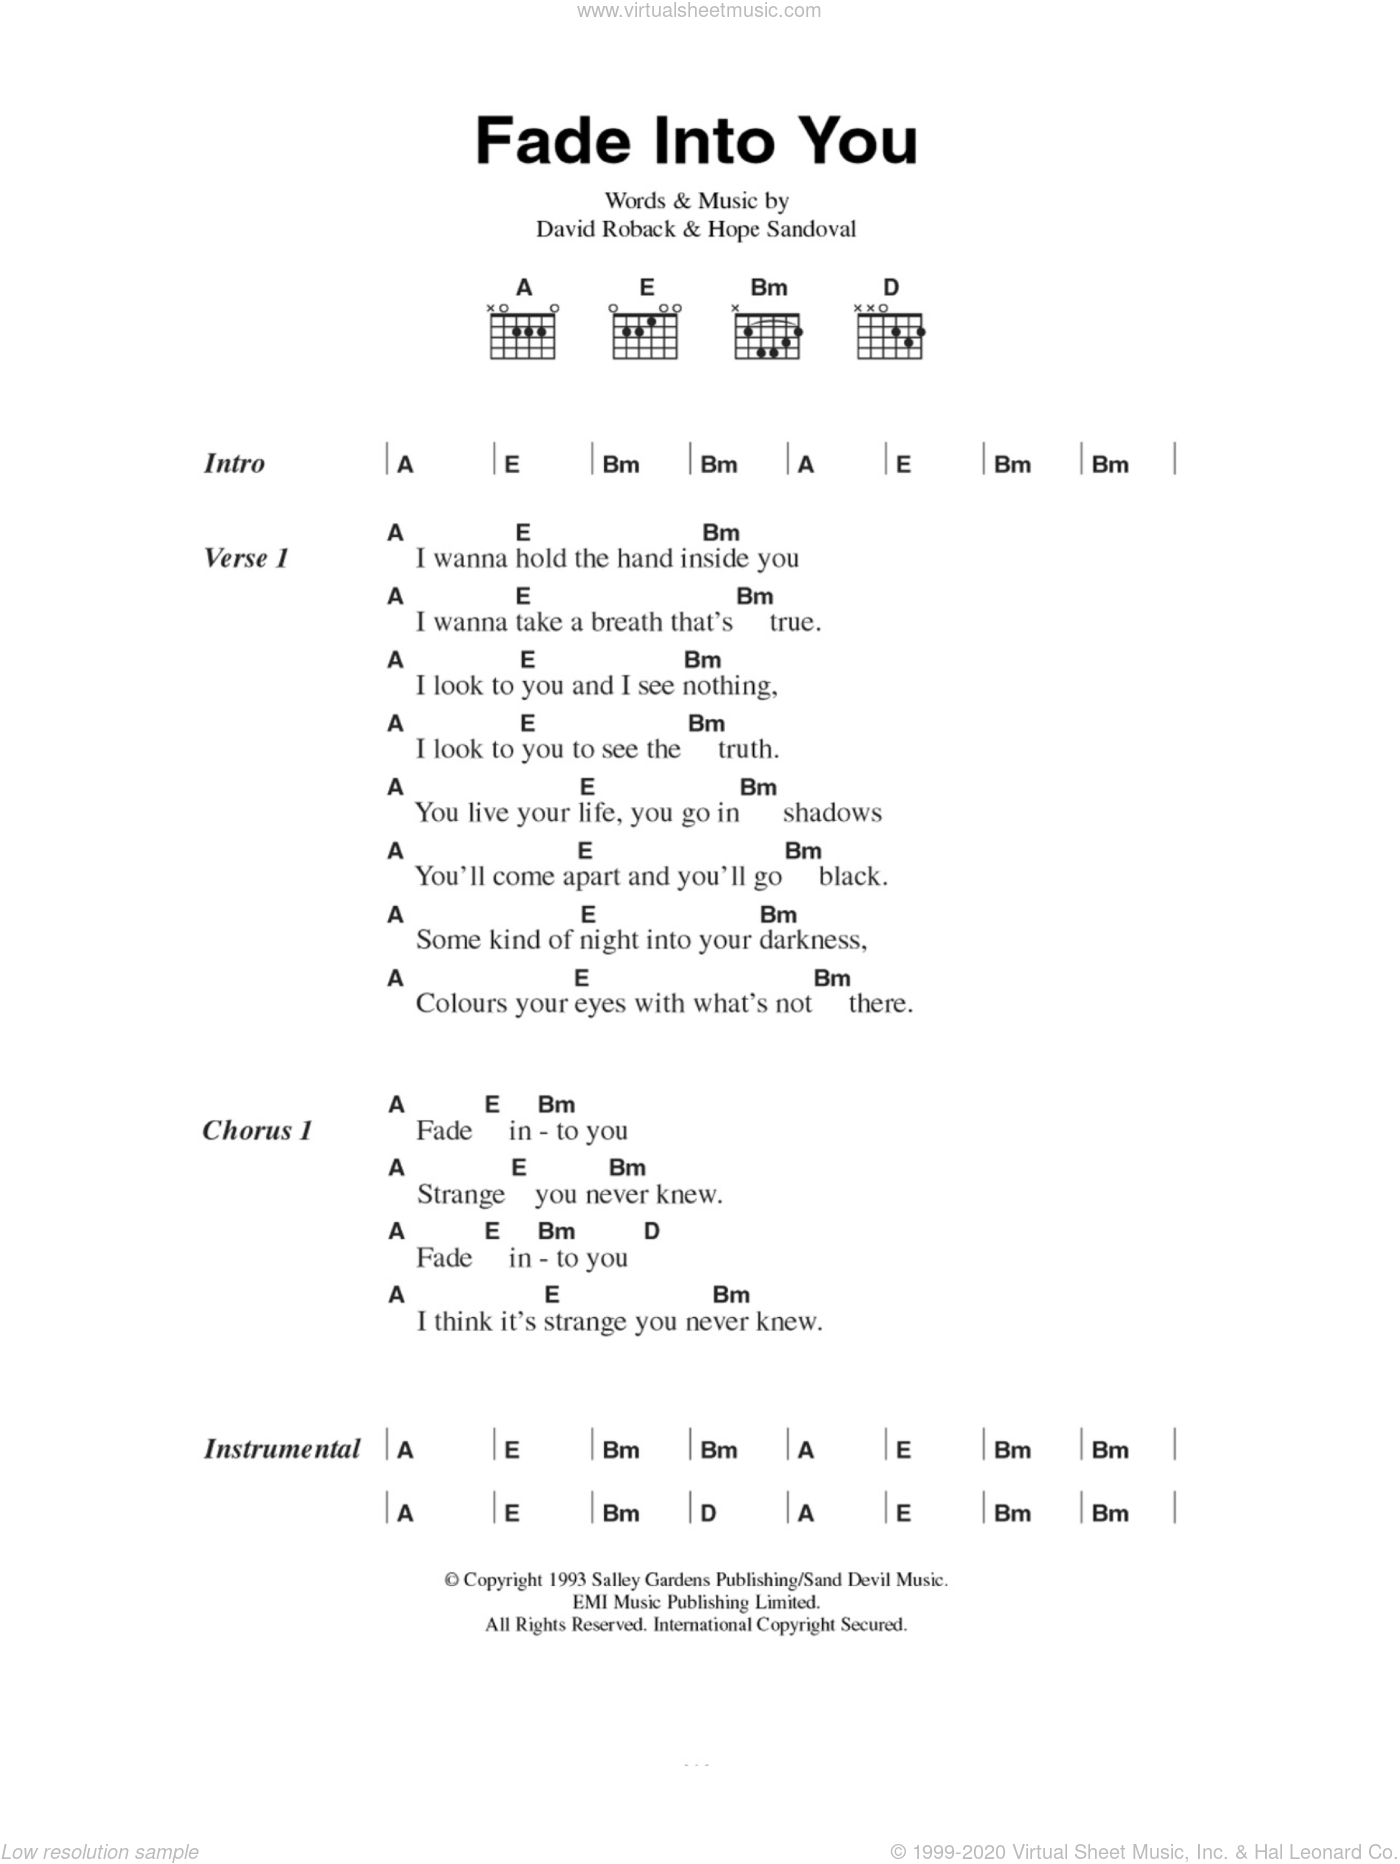 Star Fade Into You Sheet Music For Guitar Chords Pdf